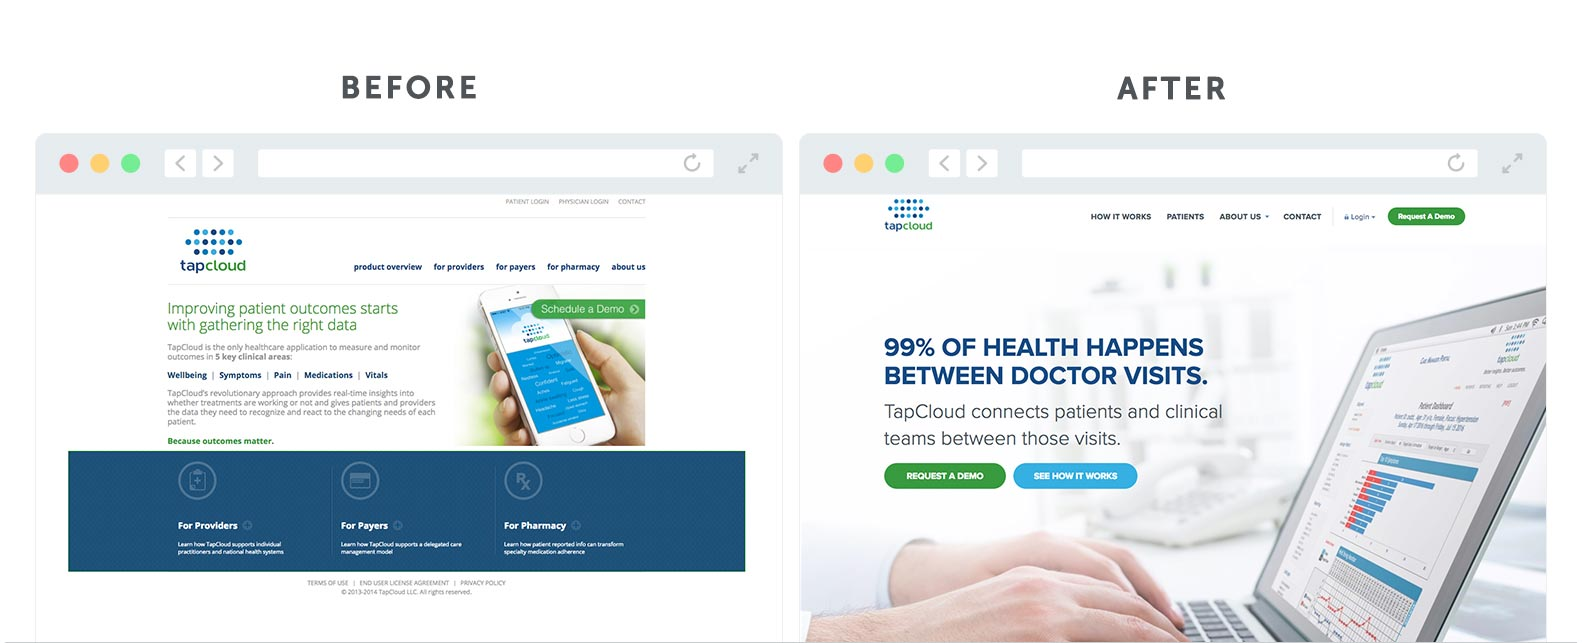 TapCloud Before and After Website | HubSpot Impact Awards